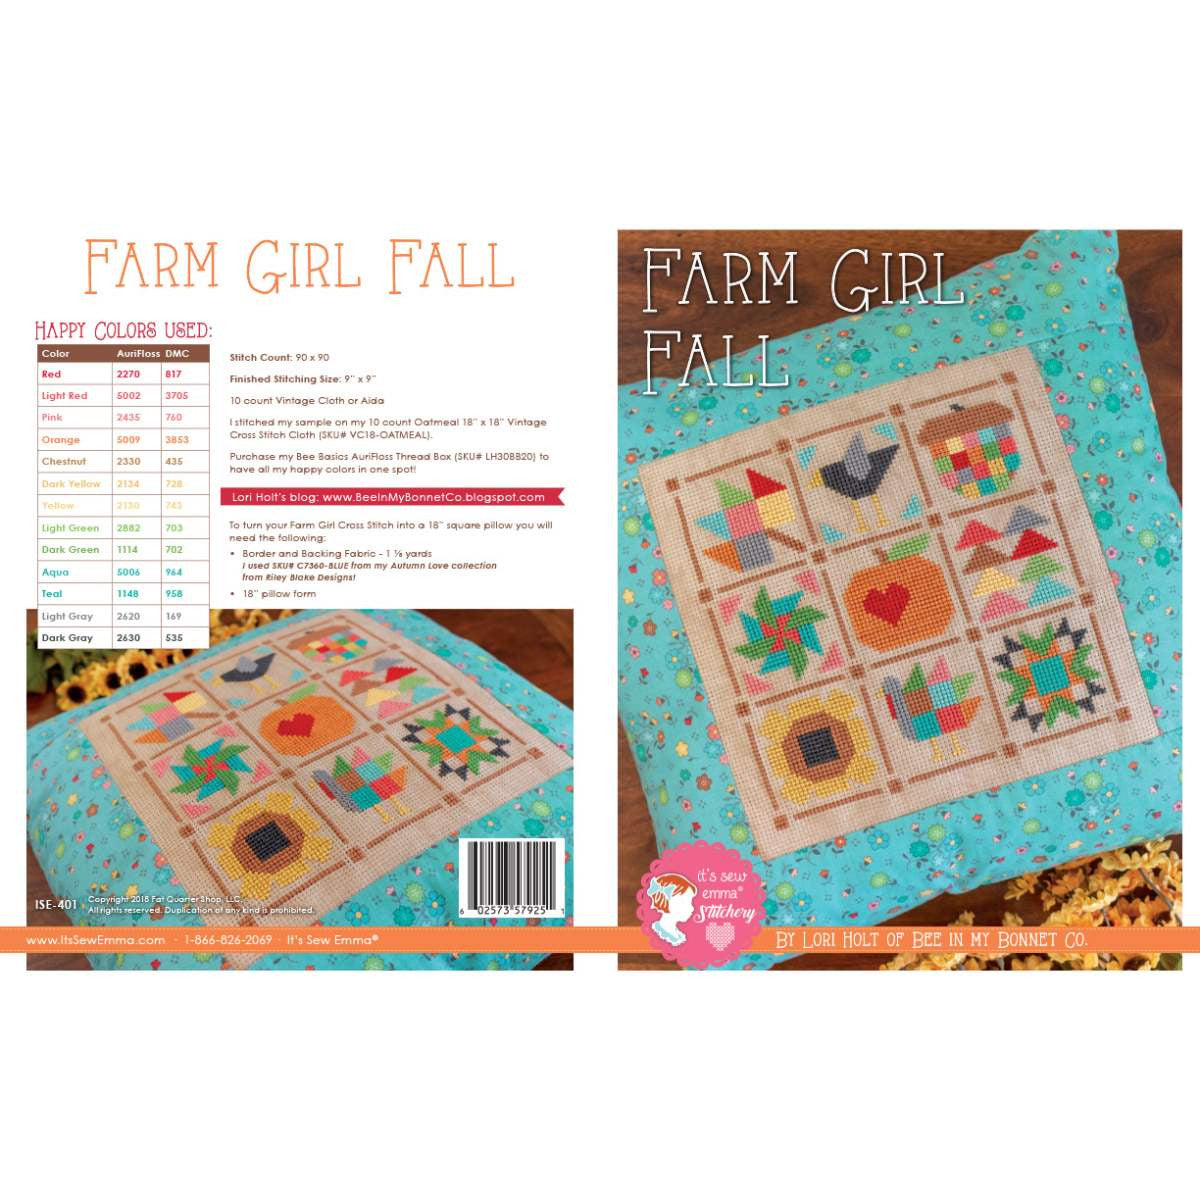 Counted Cross Stitch, It's Sew Emma Pattern by Lori Holt  - FARM GIRL FALL